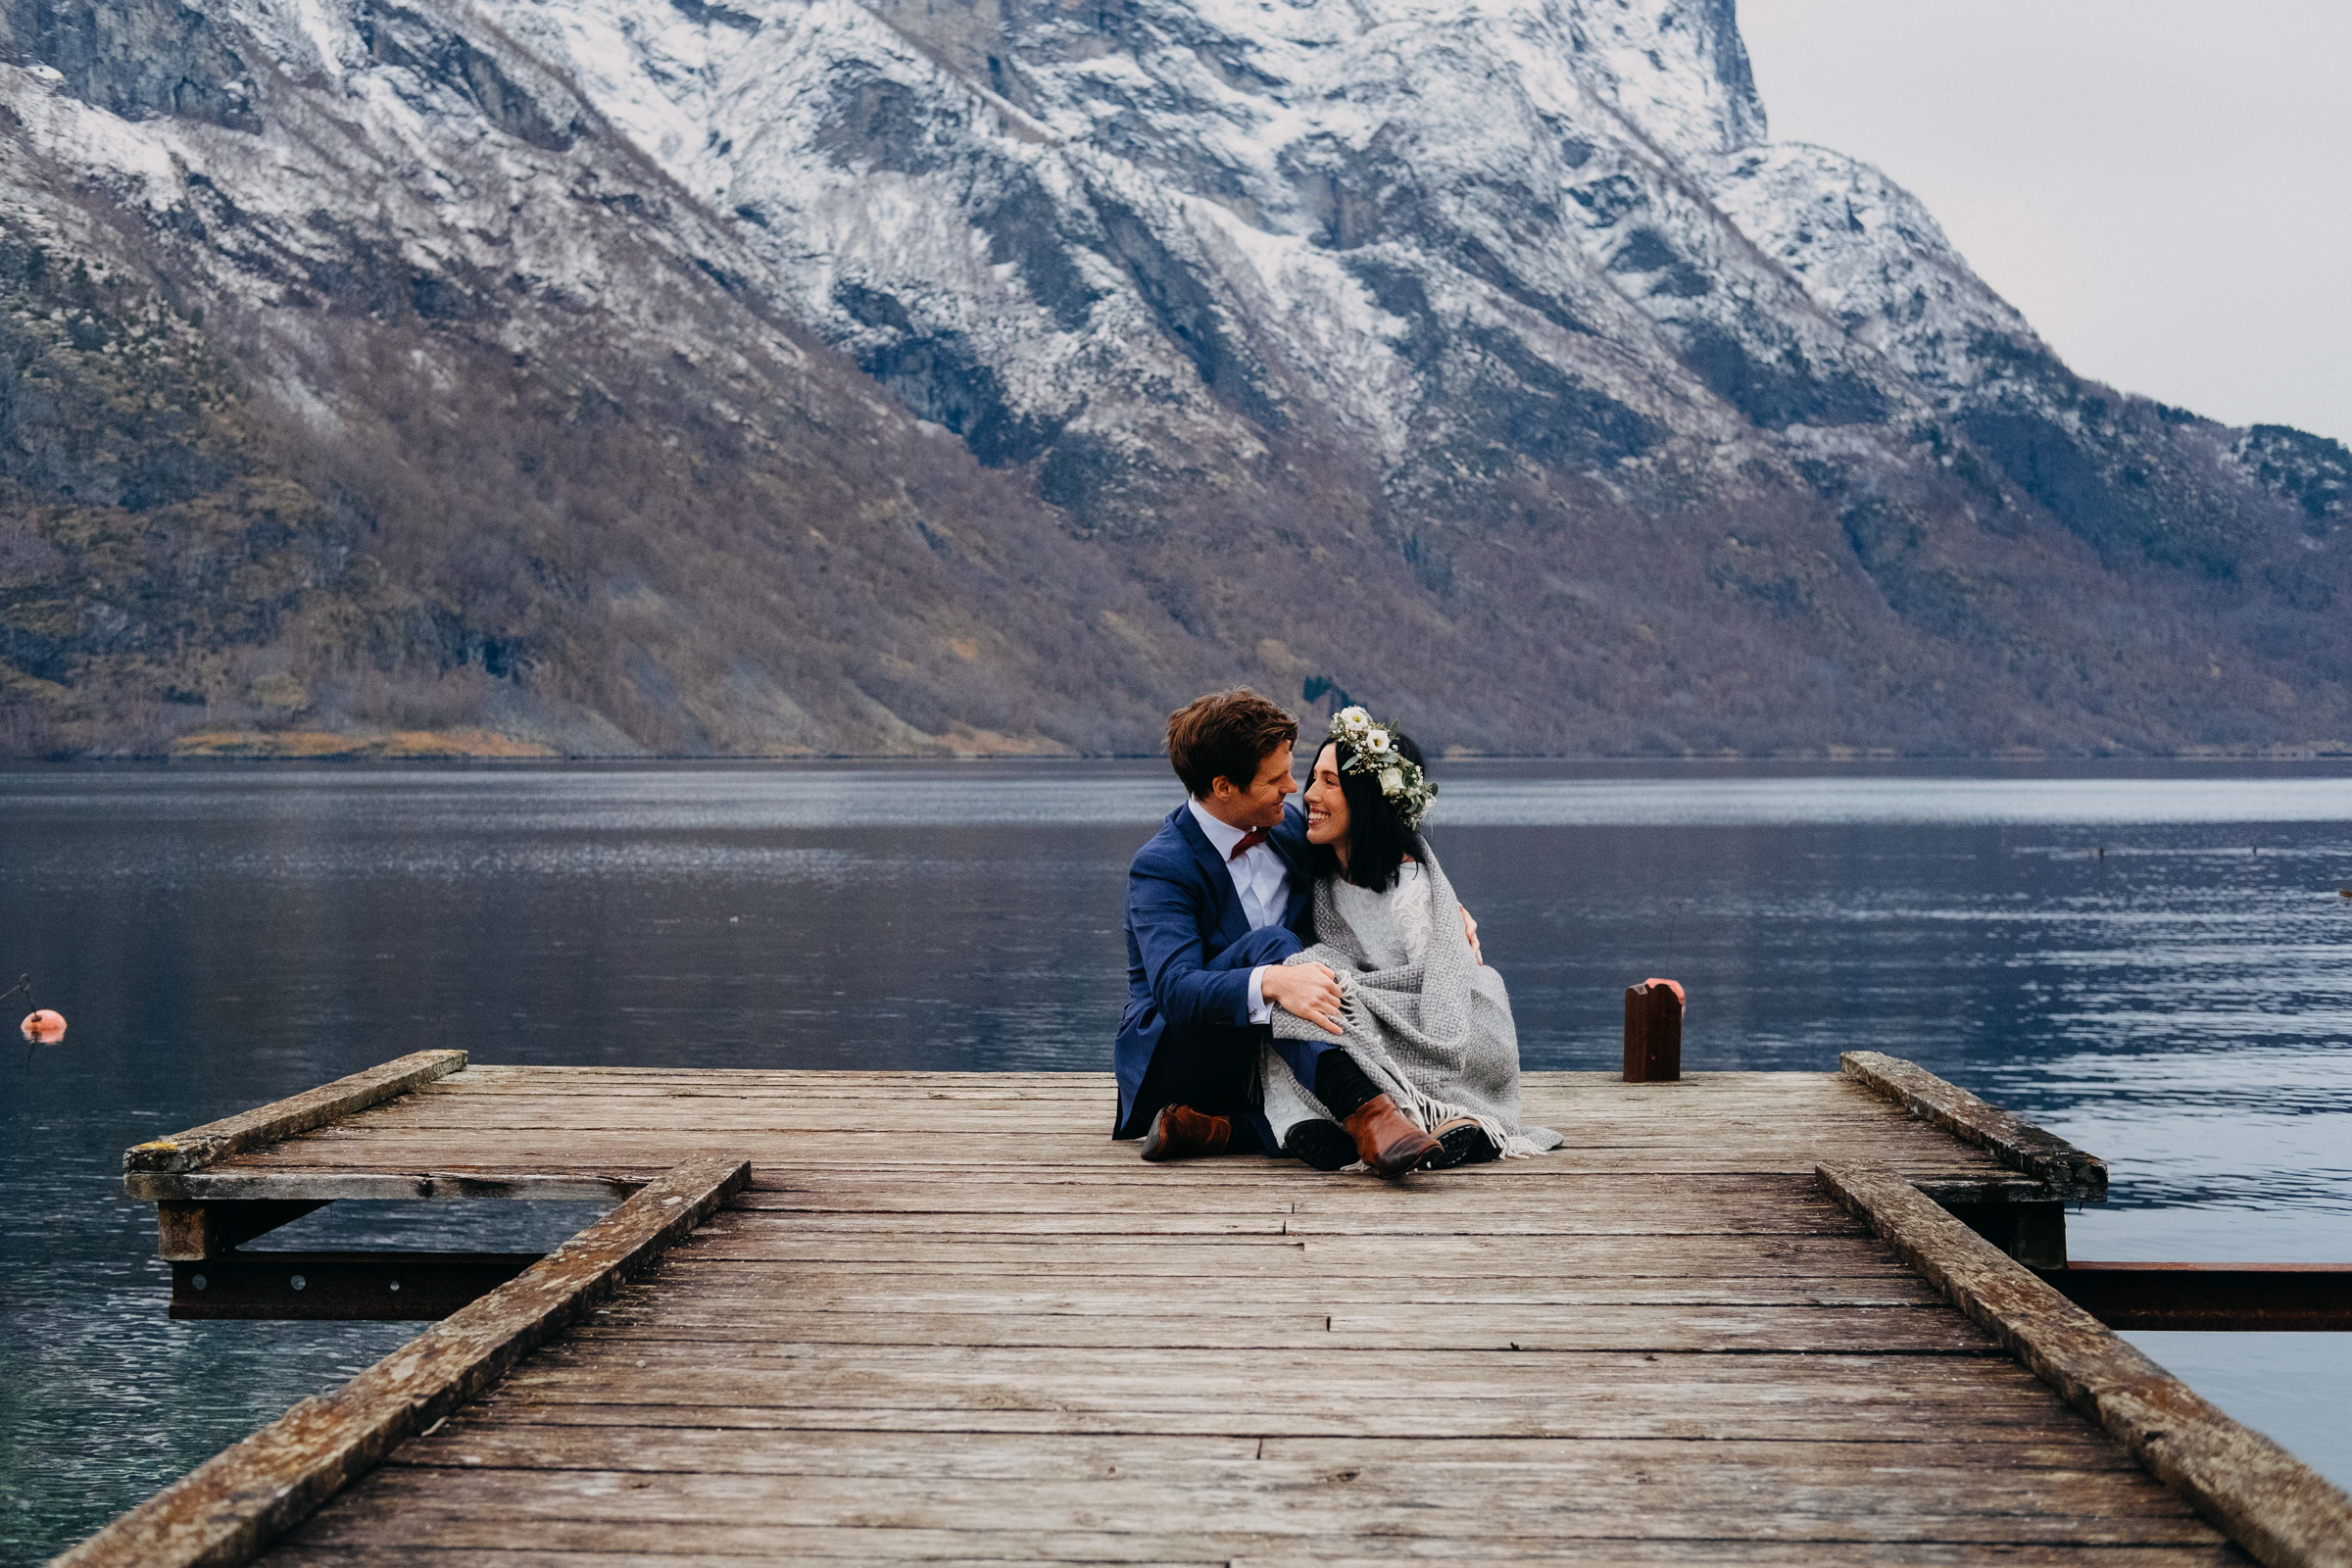 Elopement couple sitting on dock against mountains and fjord - photo by Christin Eide Photography